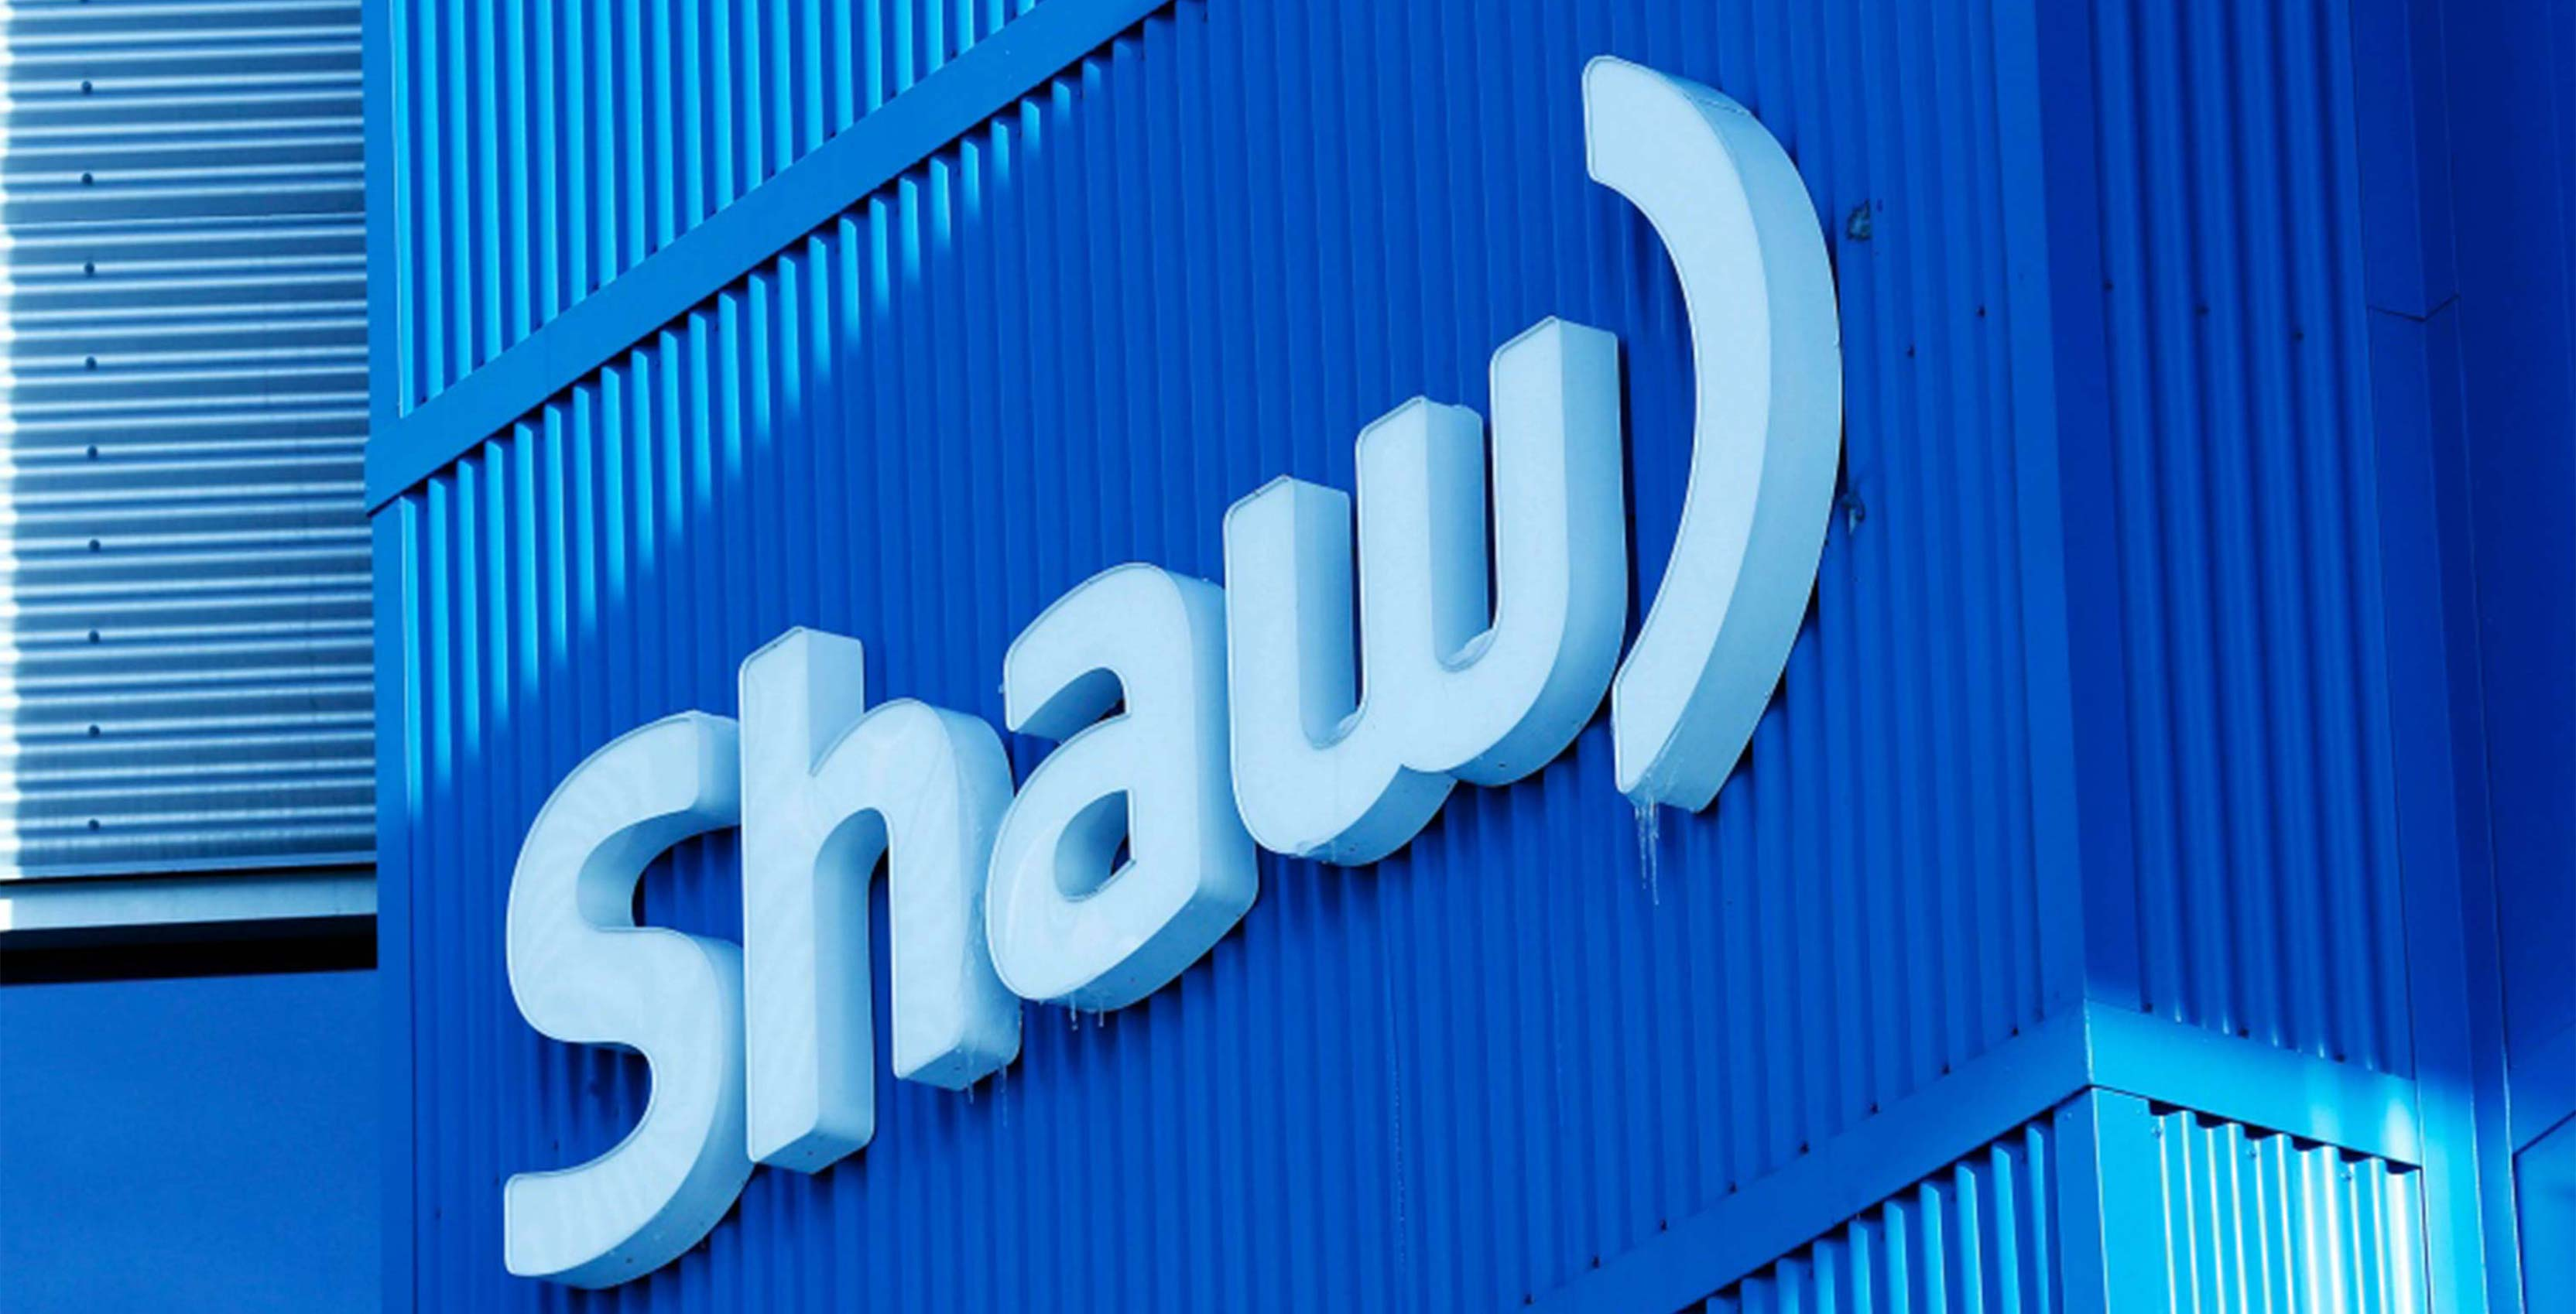 An image showing the Shaw Communications logo